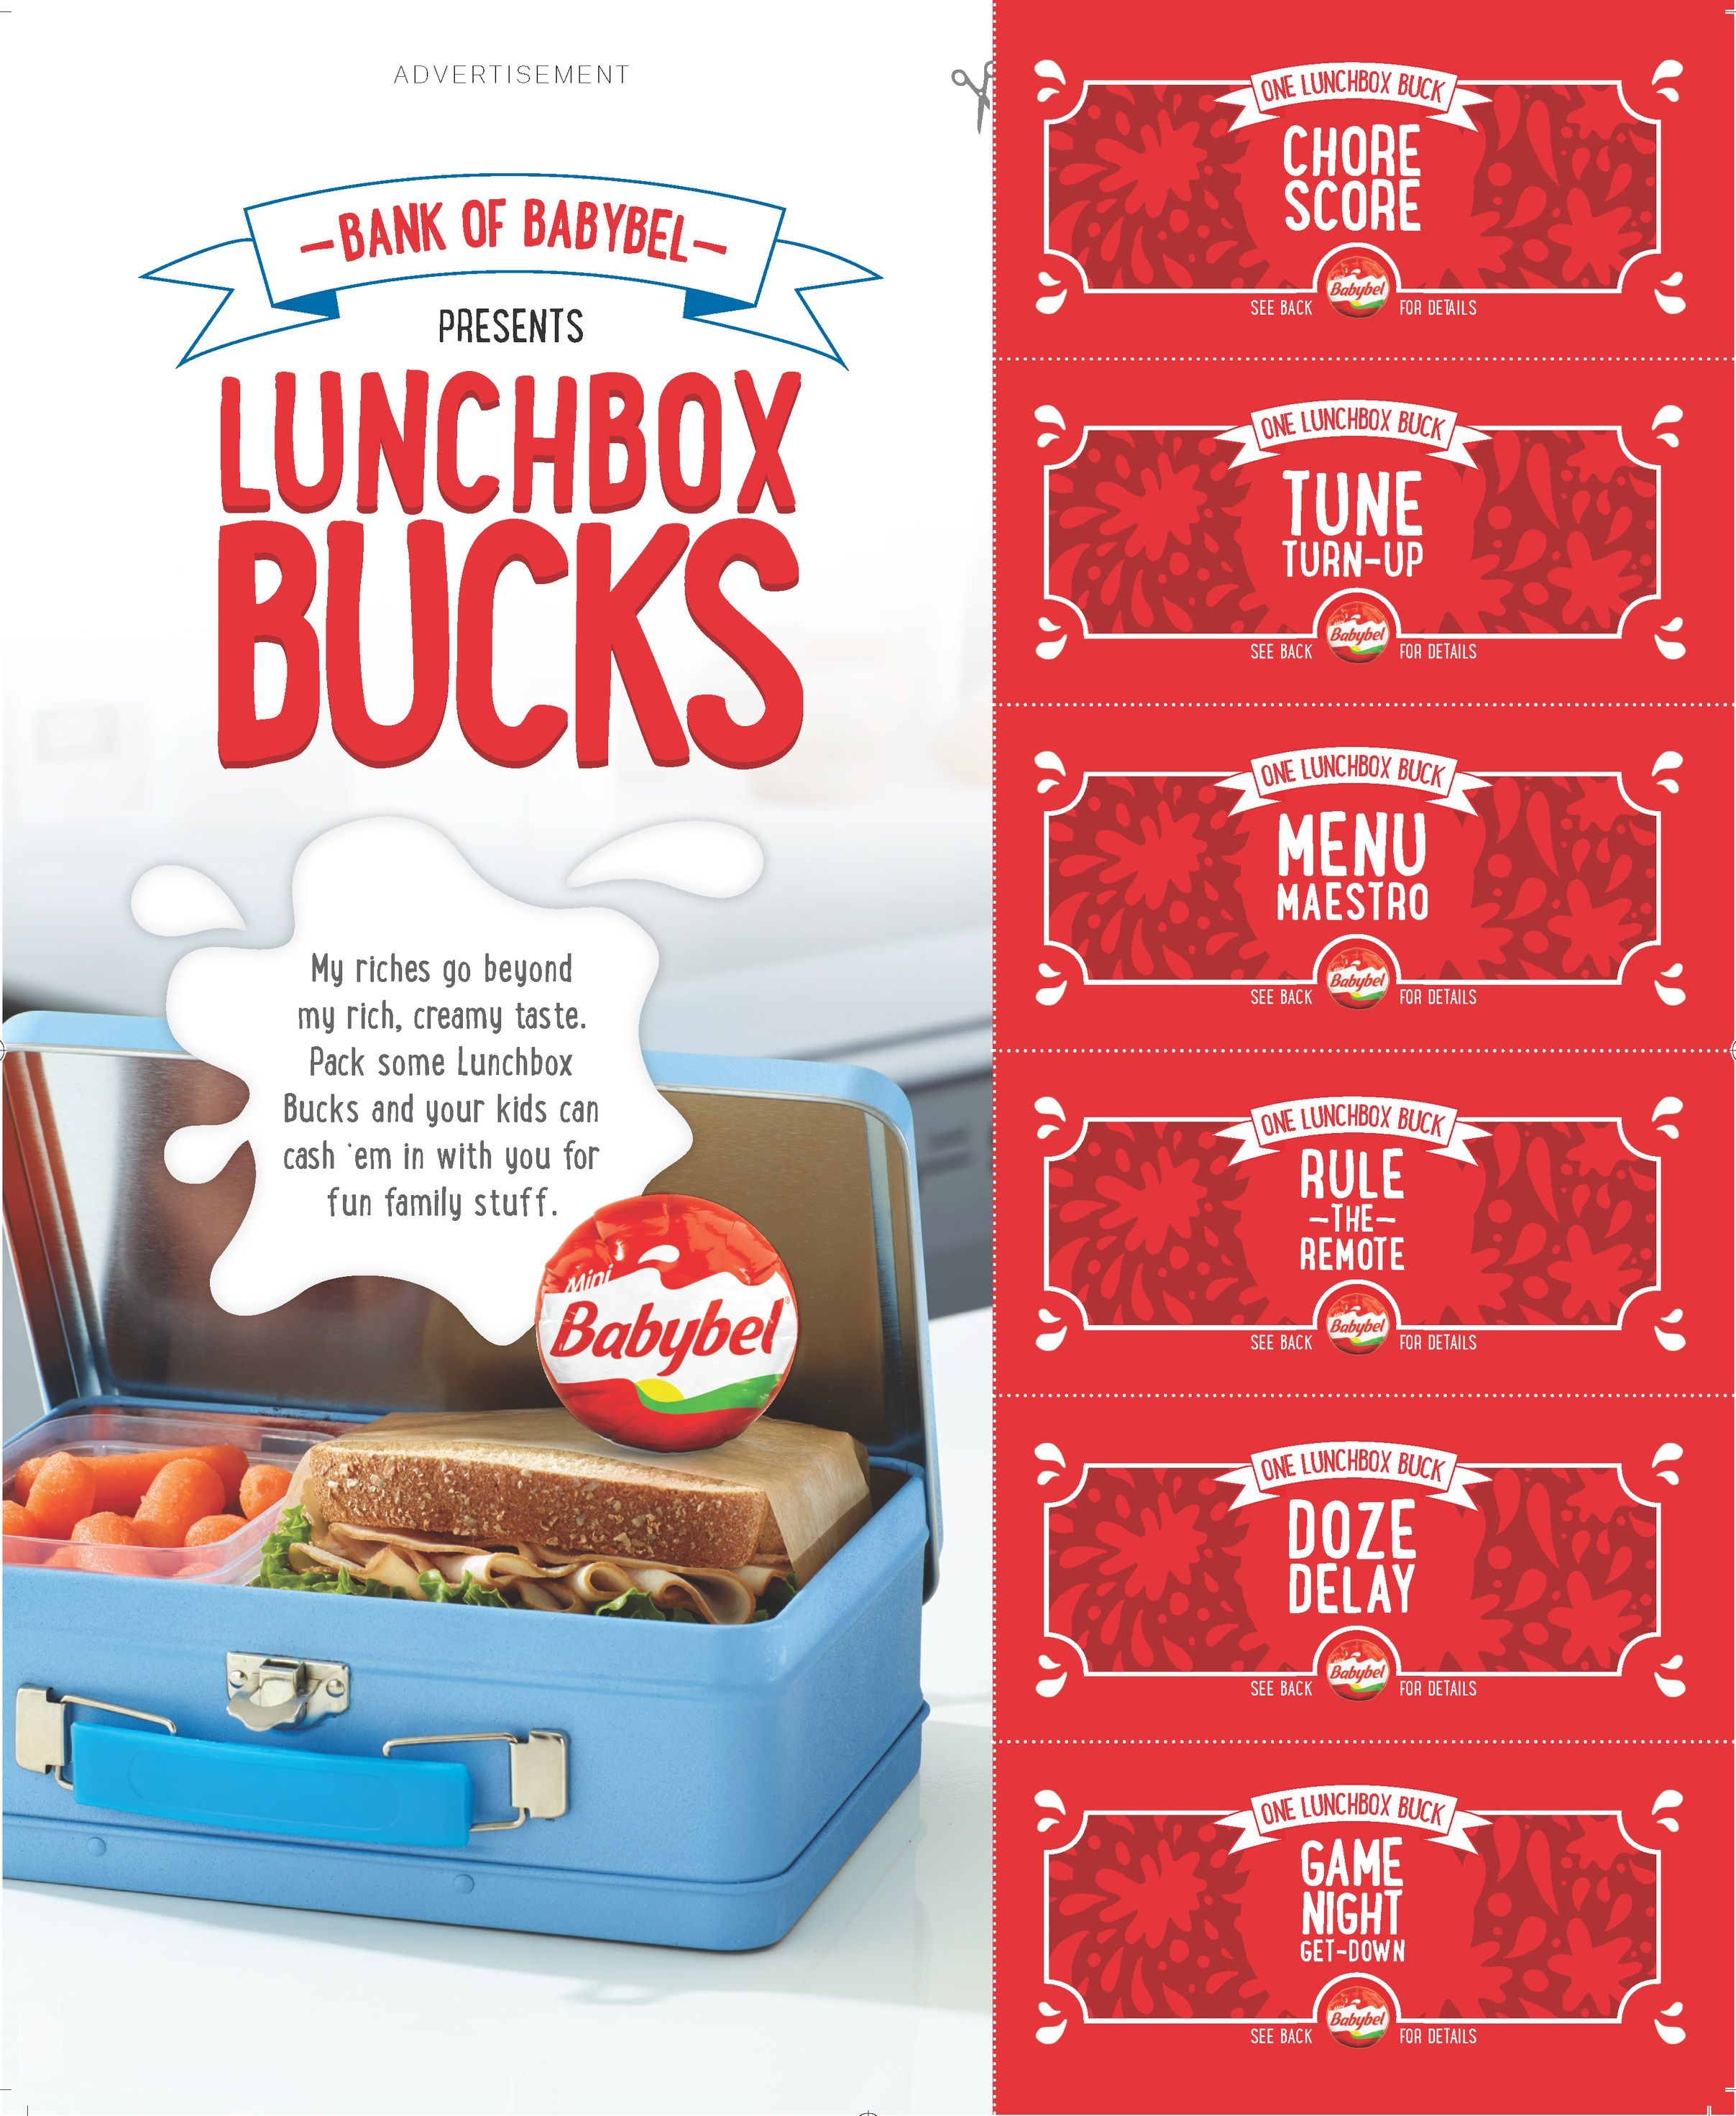 Lunchbox+Bucks_Page_1.jpg